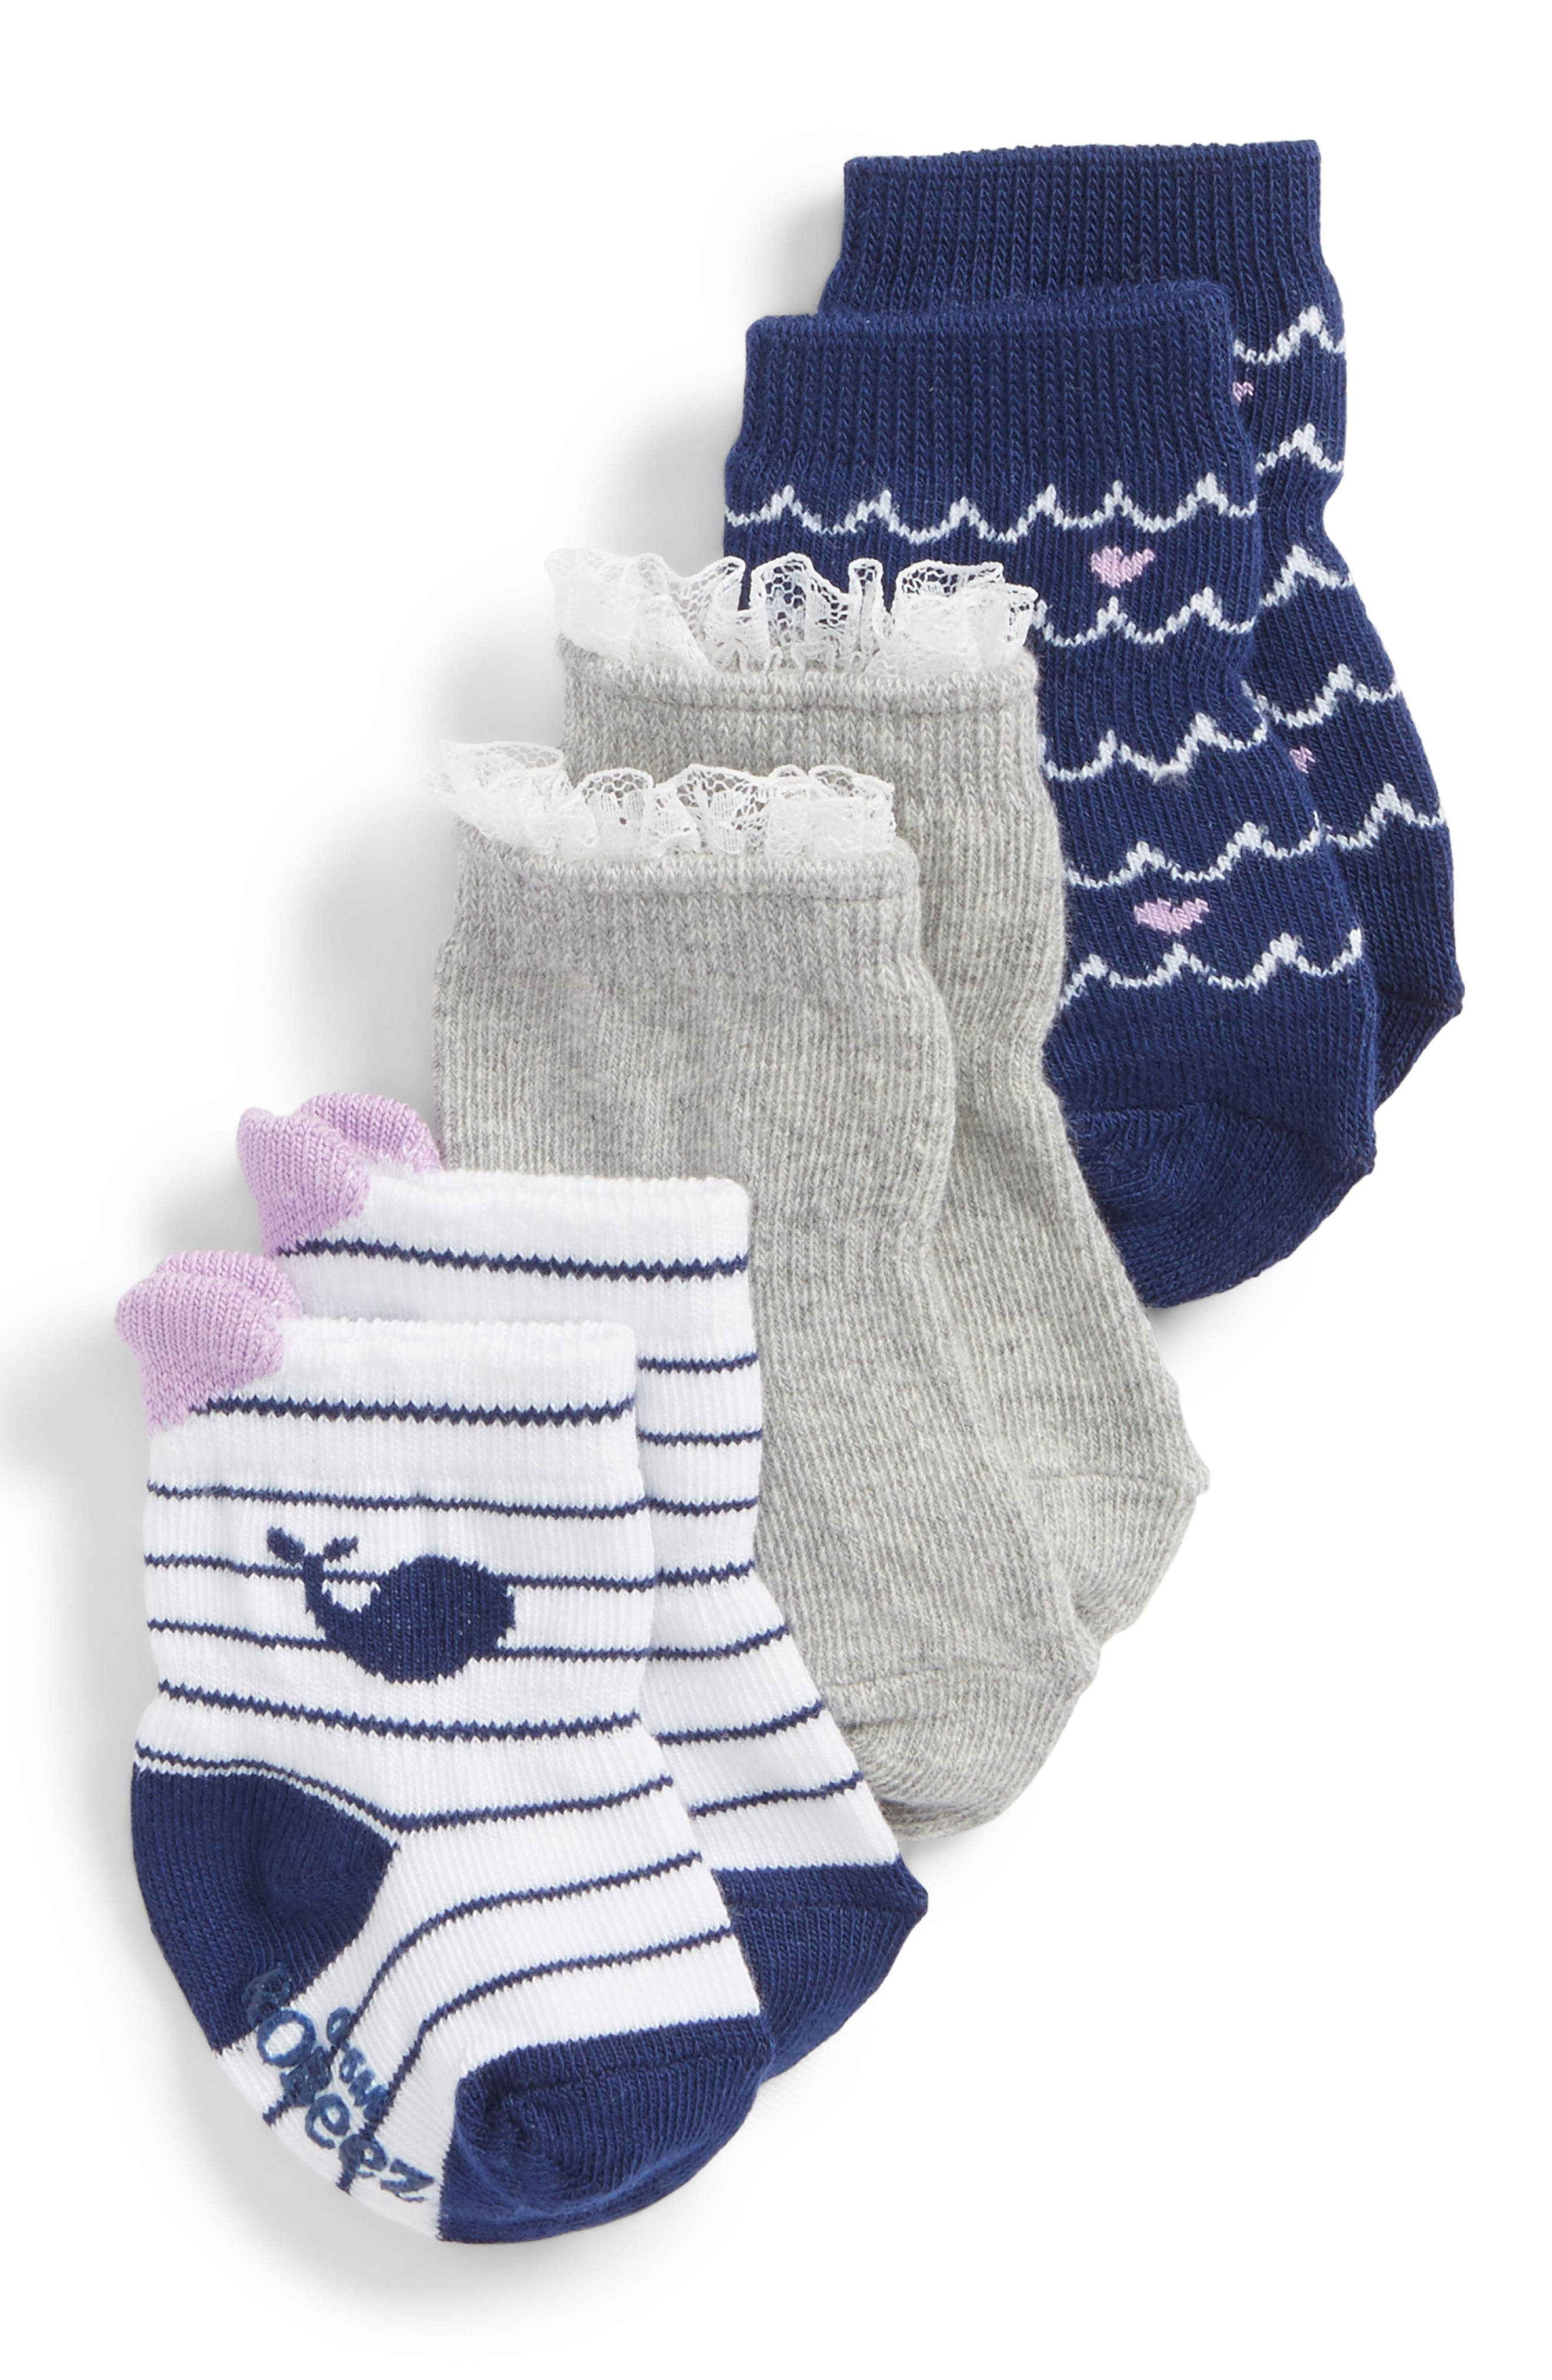 Whales 3-Pack Socks,                             Main thumbnail 1, color,                             Navy/ White/ Grey